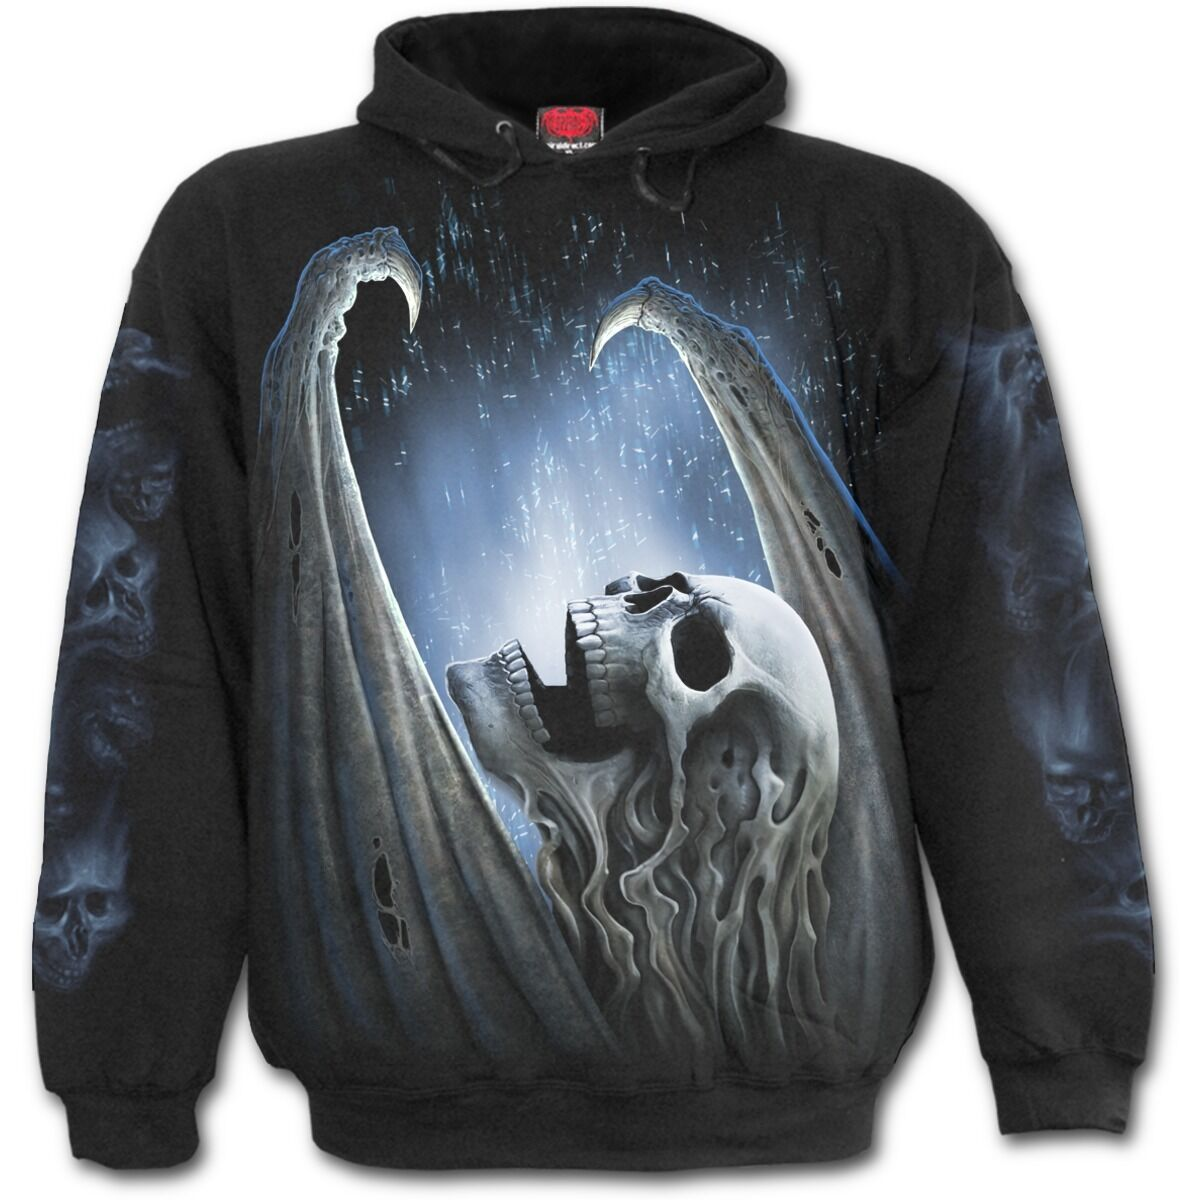 SPIRAL DIRECT WINGED SKELTON Hoodie Biker/Grim Reaper/Skull/Demon/Horror/Hoodie